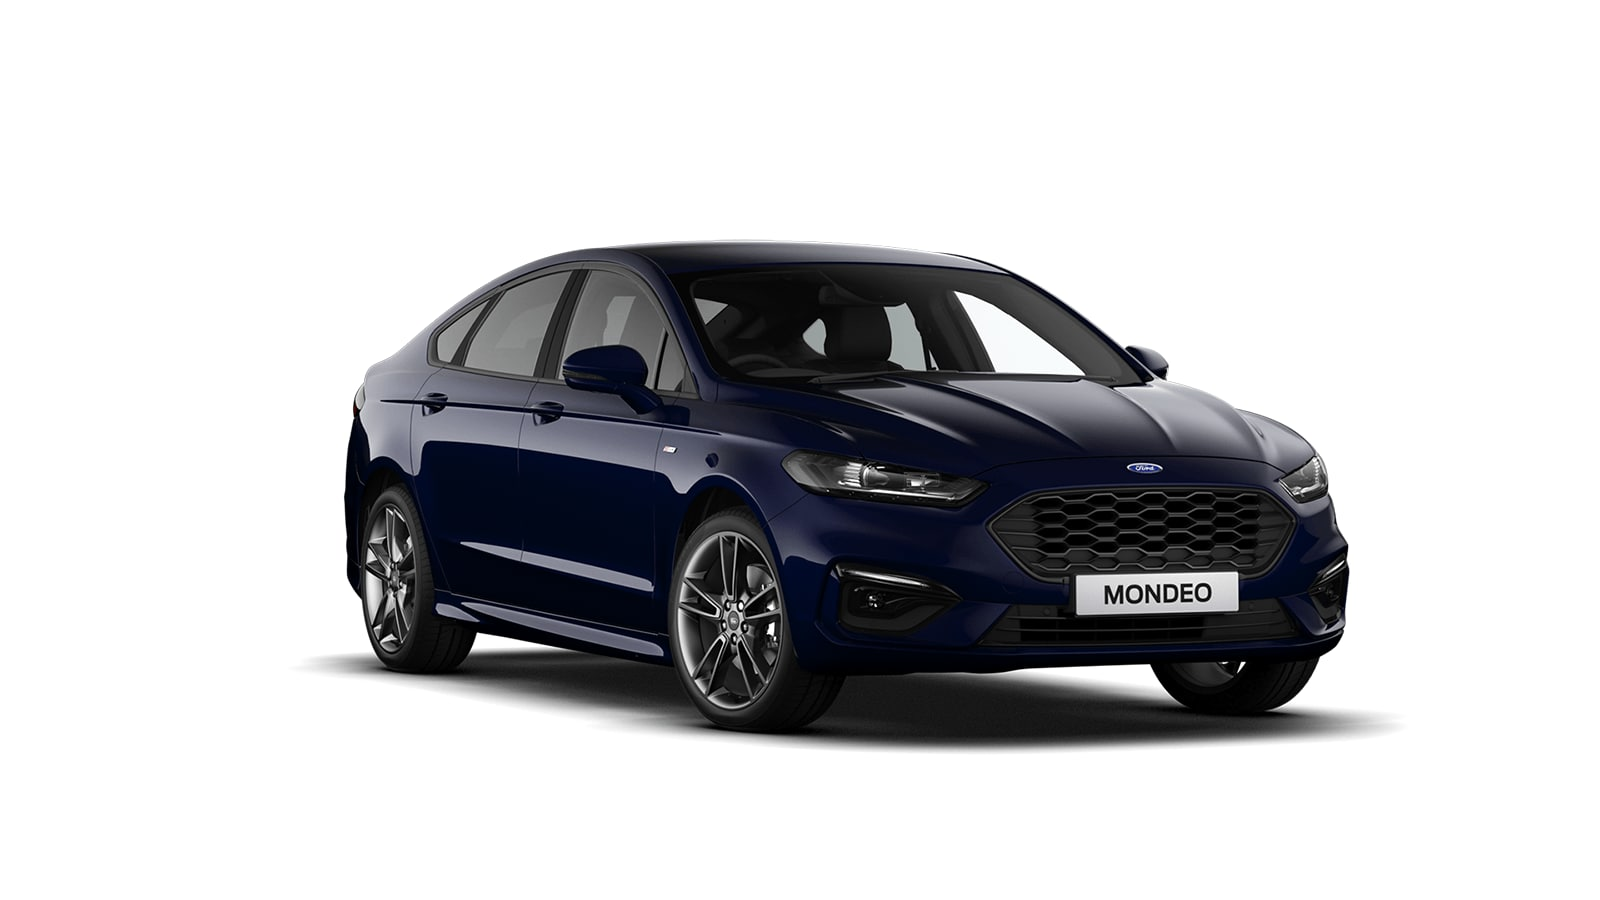 Ford Mondeo ST-Line Edition 2.0L EcoBlue 150PS at Browne & Day